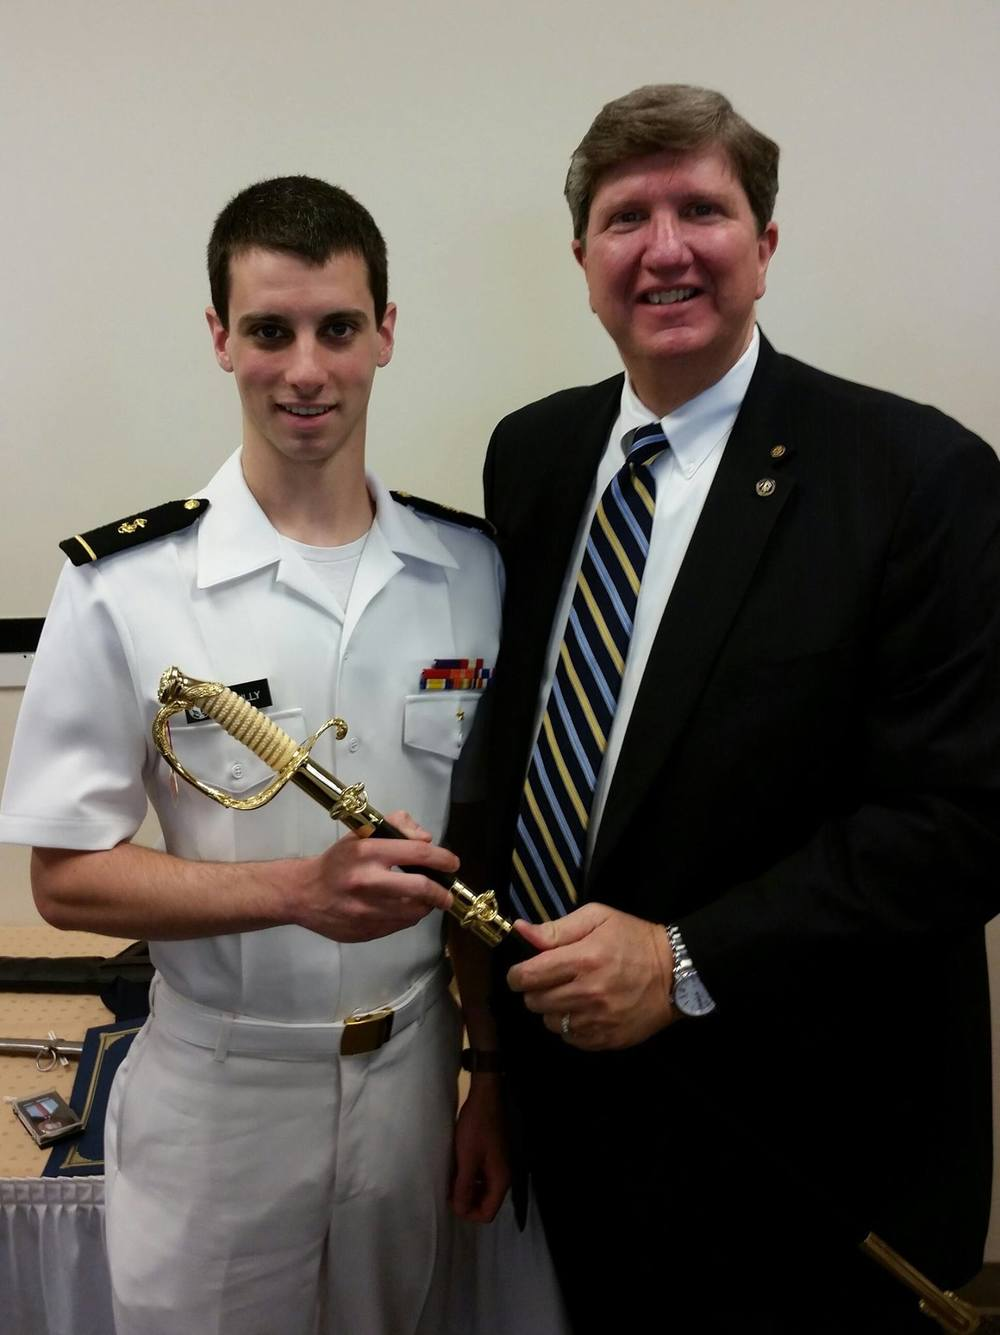 Council president Jeff alexander presented Midshipman Christopher O'Reilly  with a Naval Officer's Sword for his outstanding performance in the NROTC program at Georgia Tech.